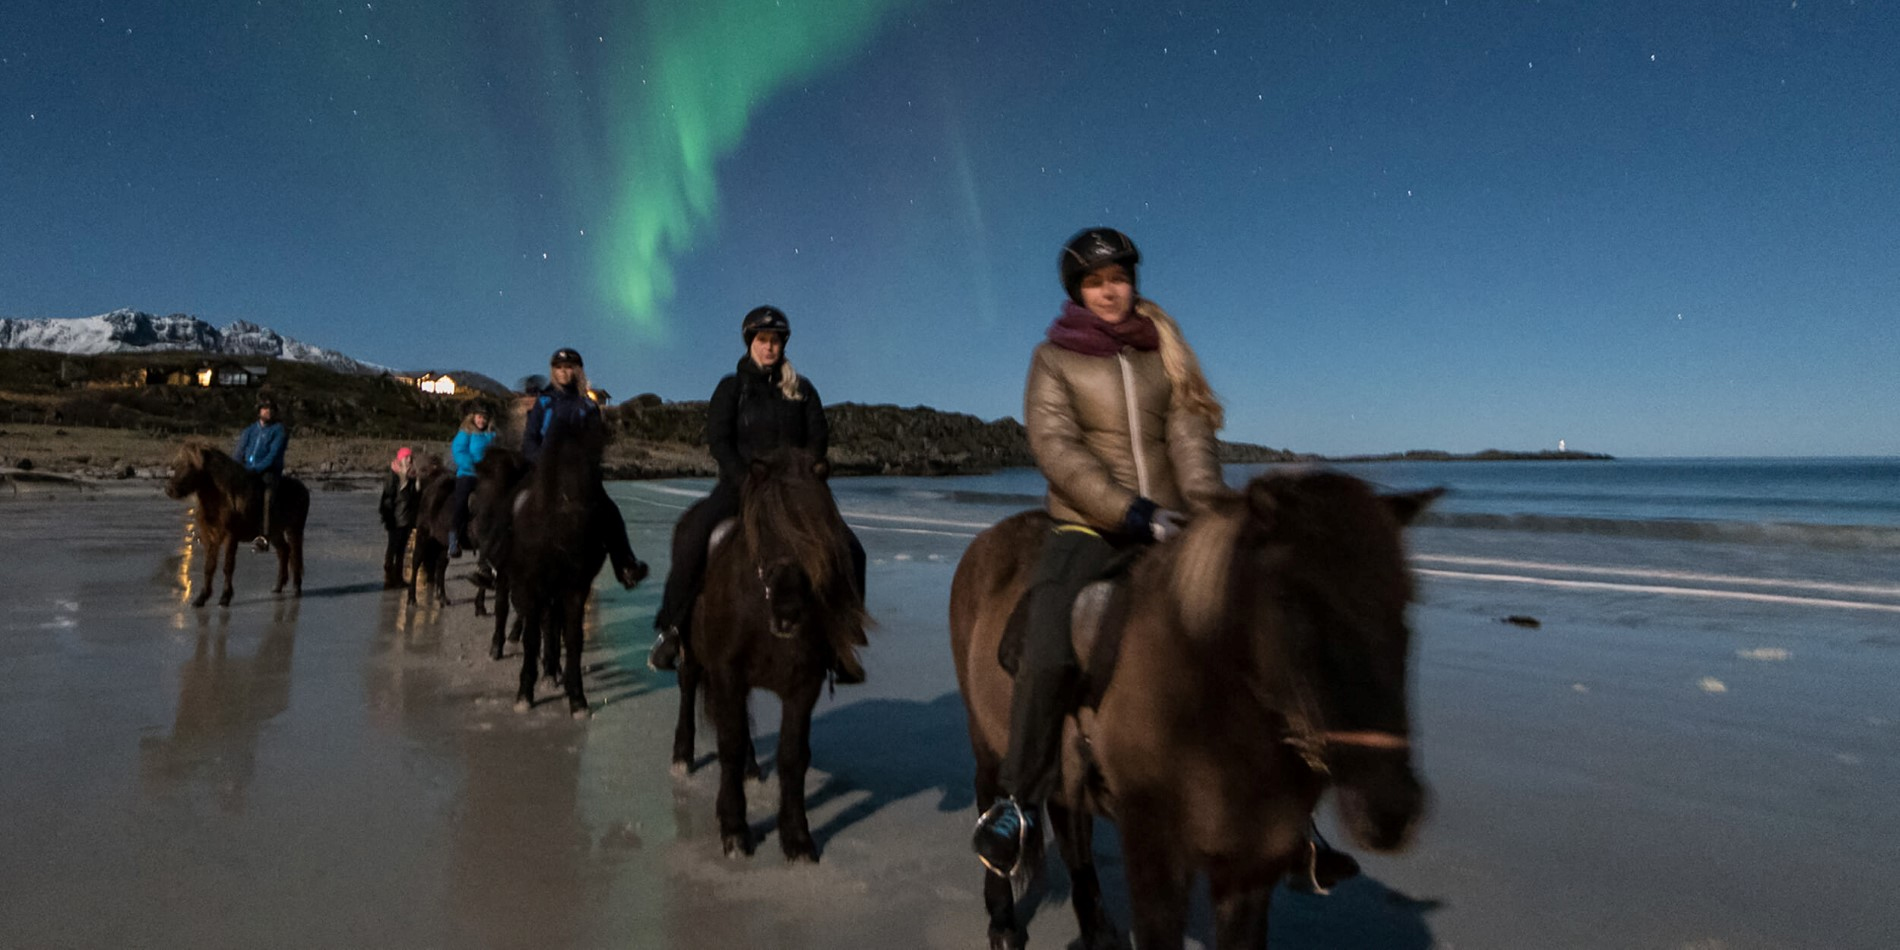 Hurtigruten excursion to explore Lofoten by horse